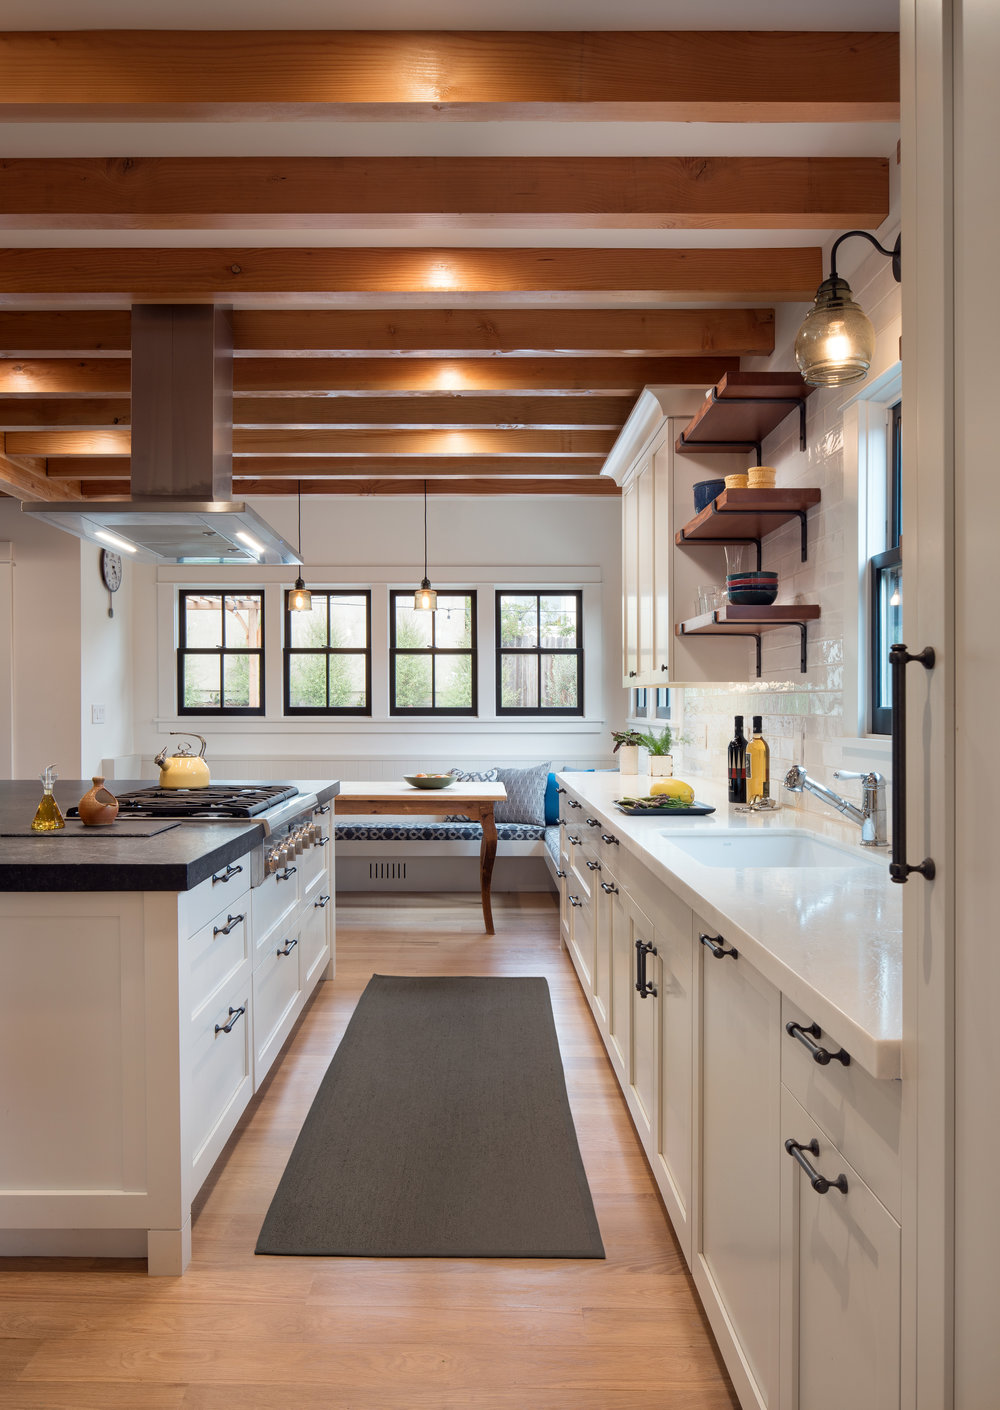 180522_923_Ordway_Kitchen_Lengthwise.jpg